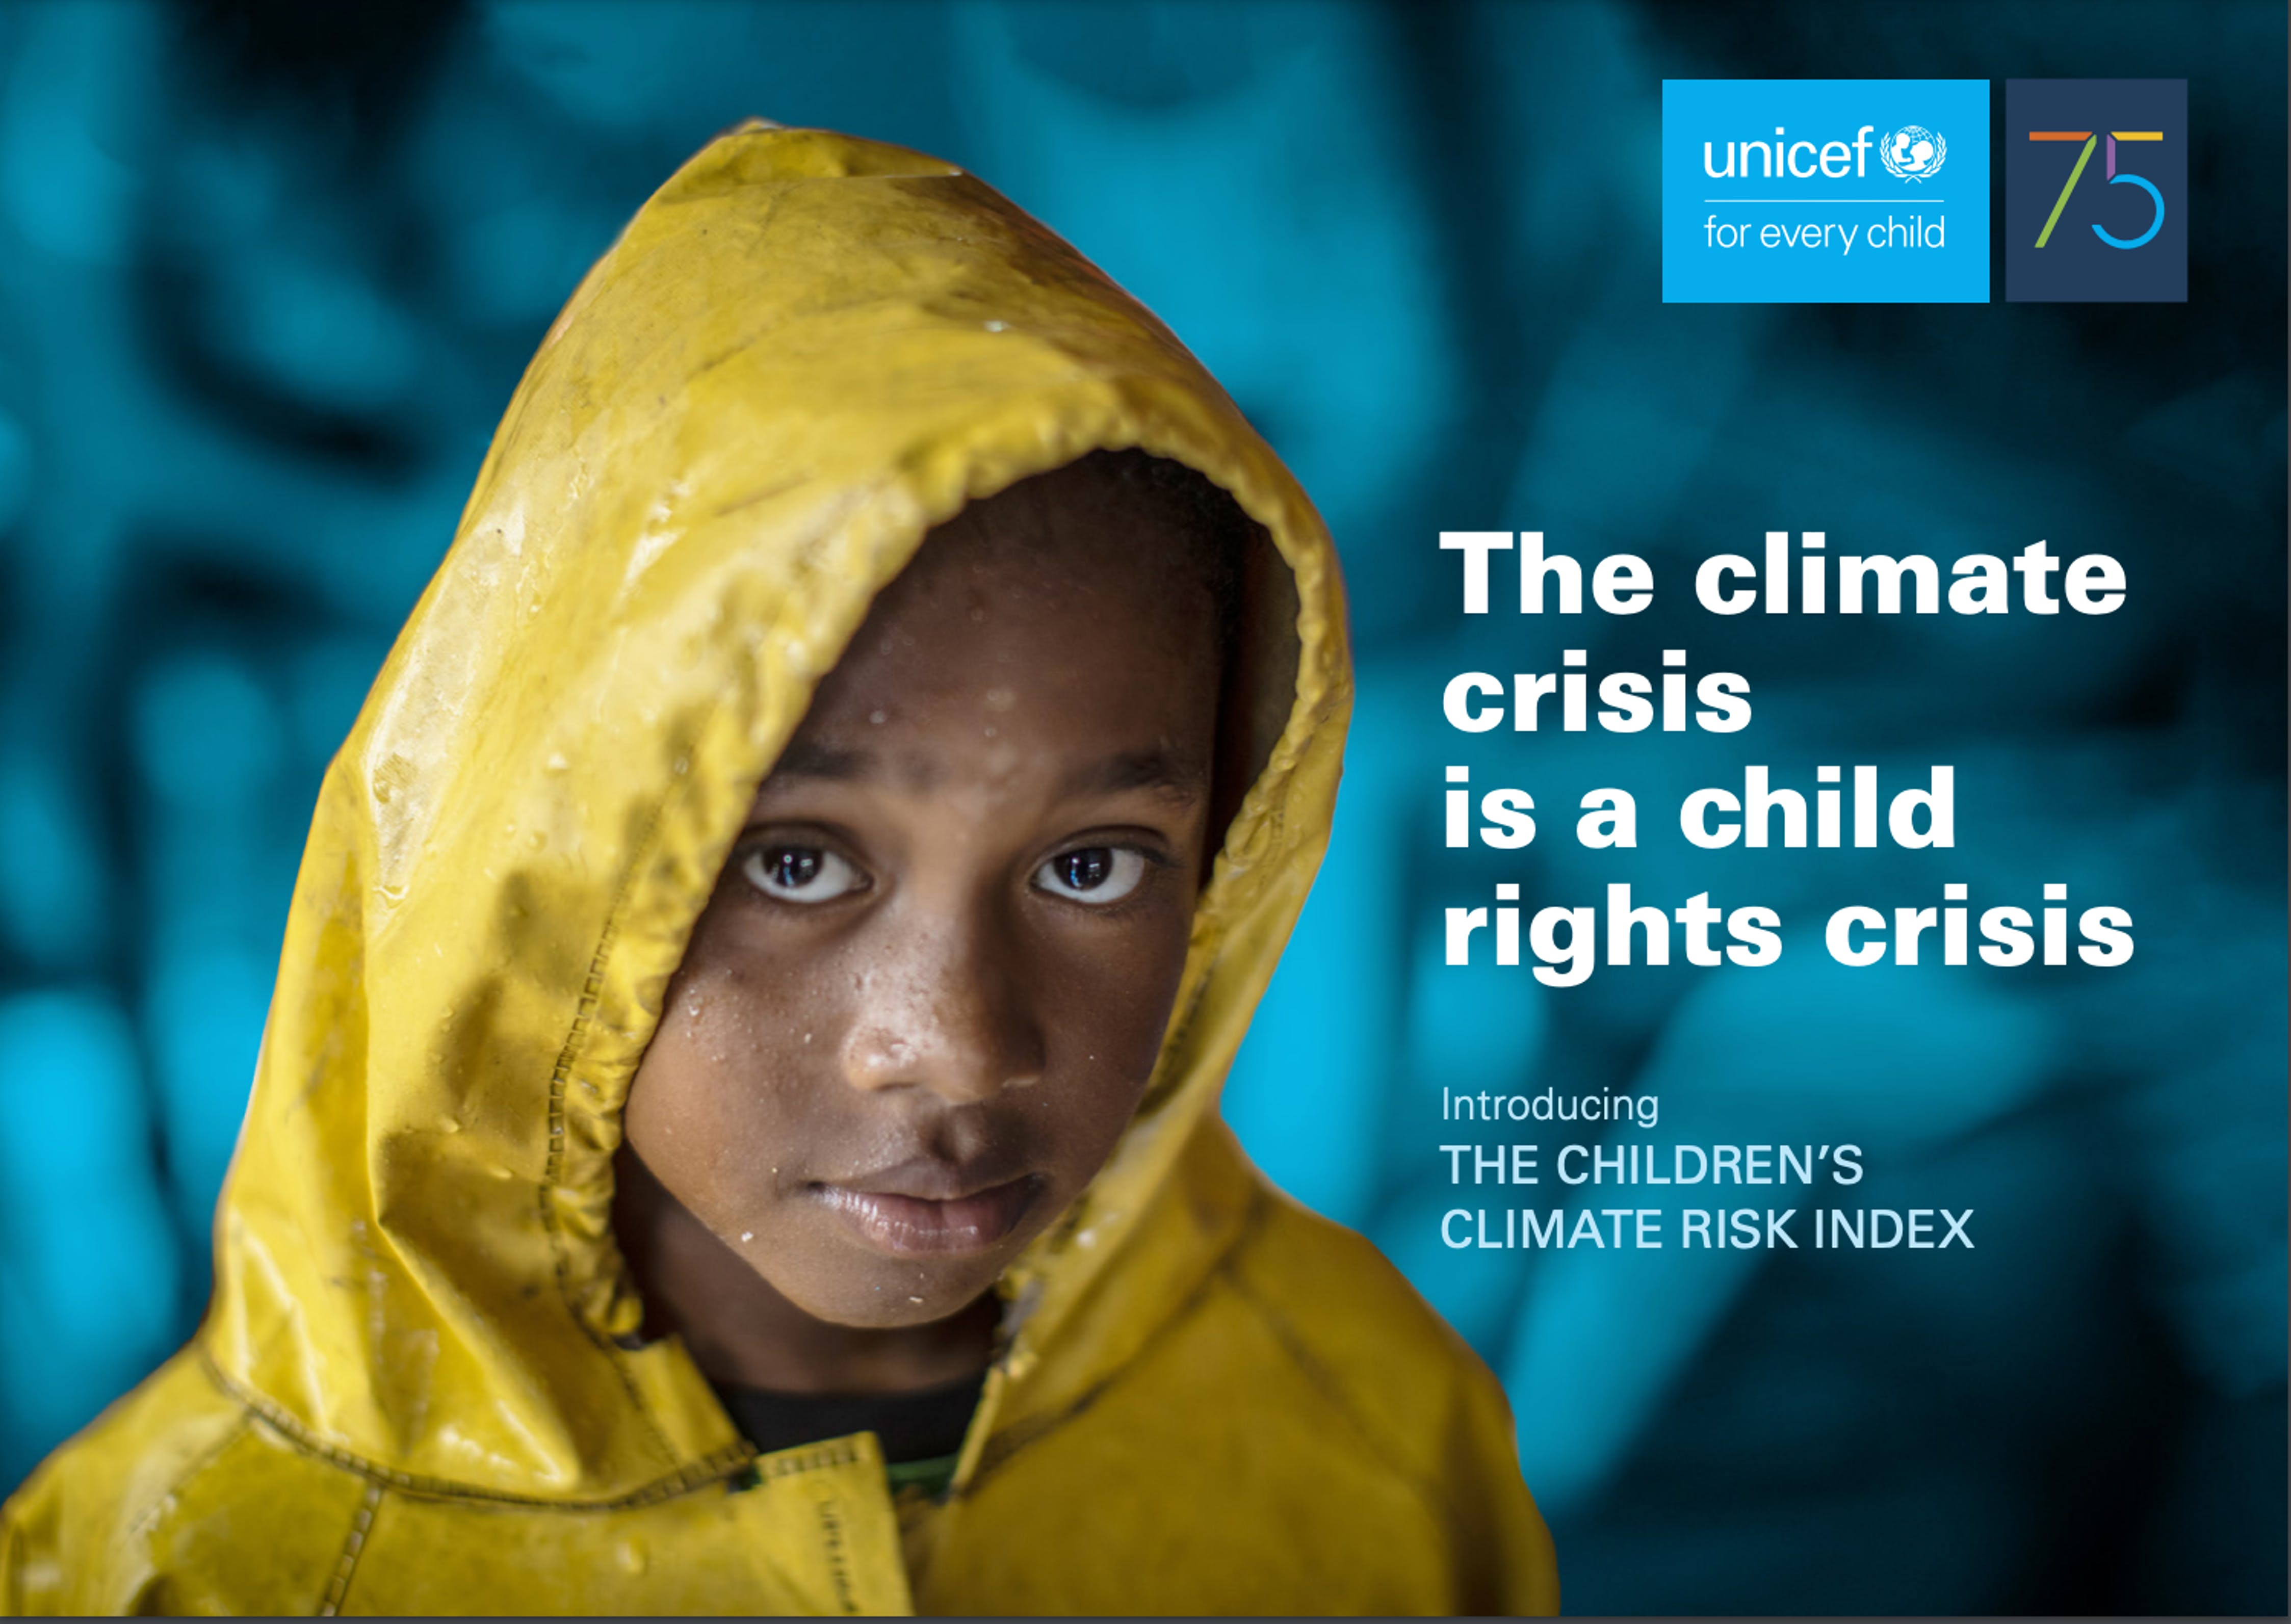 The climate crisis is a child rights crisis